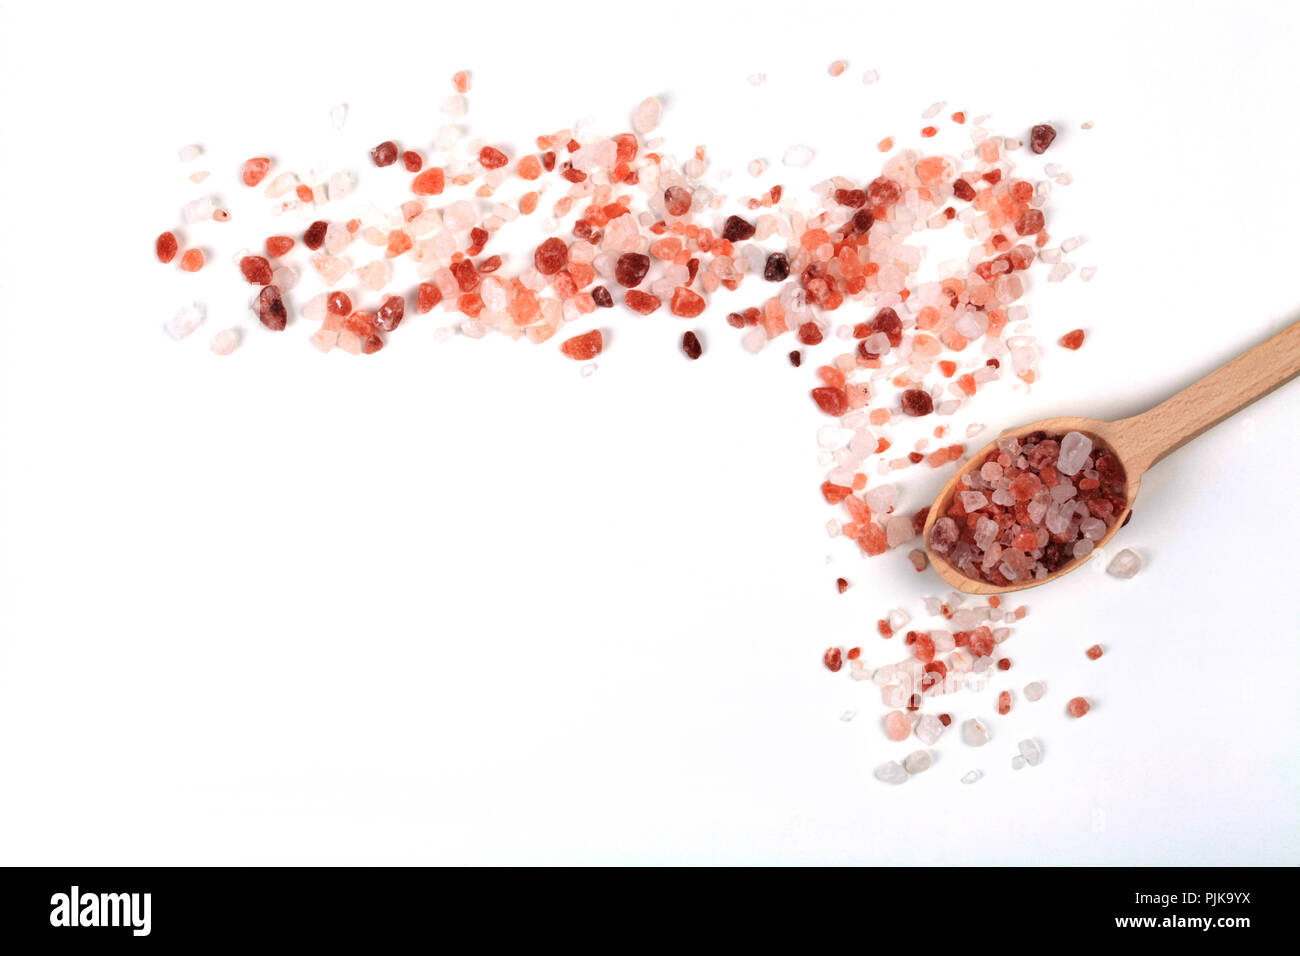 Himalayan Salt Cristals Frame With Brown Wood Spoon Isolated on White Background - Stock Image